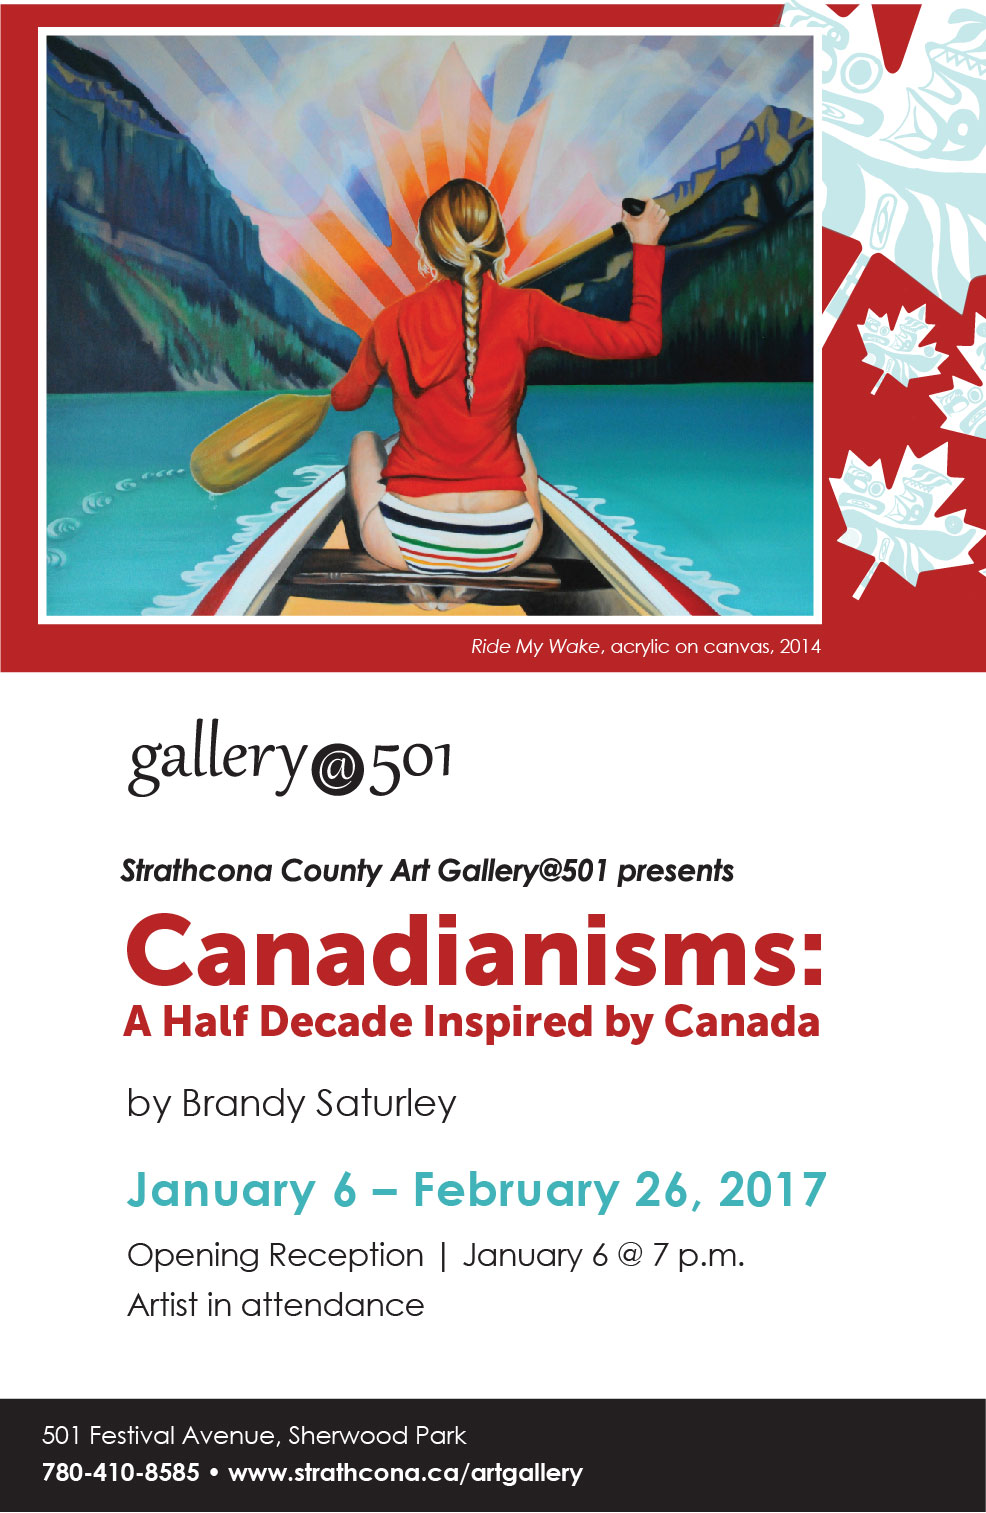 Canadianisms: A Half Decade Inspired by Canada Jan. 6 to Feb. 26, 2017 Strathcona County Gallery @501 - Canadian Contemporary Realism painter, Brandy Saturley